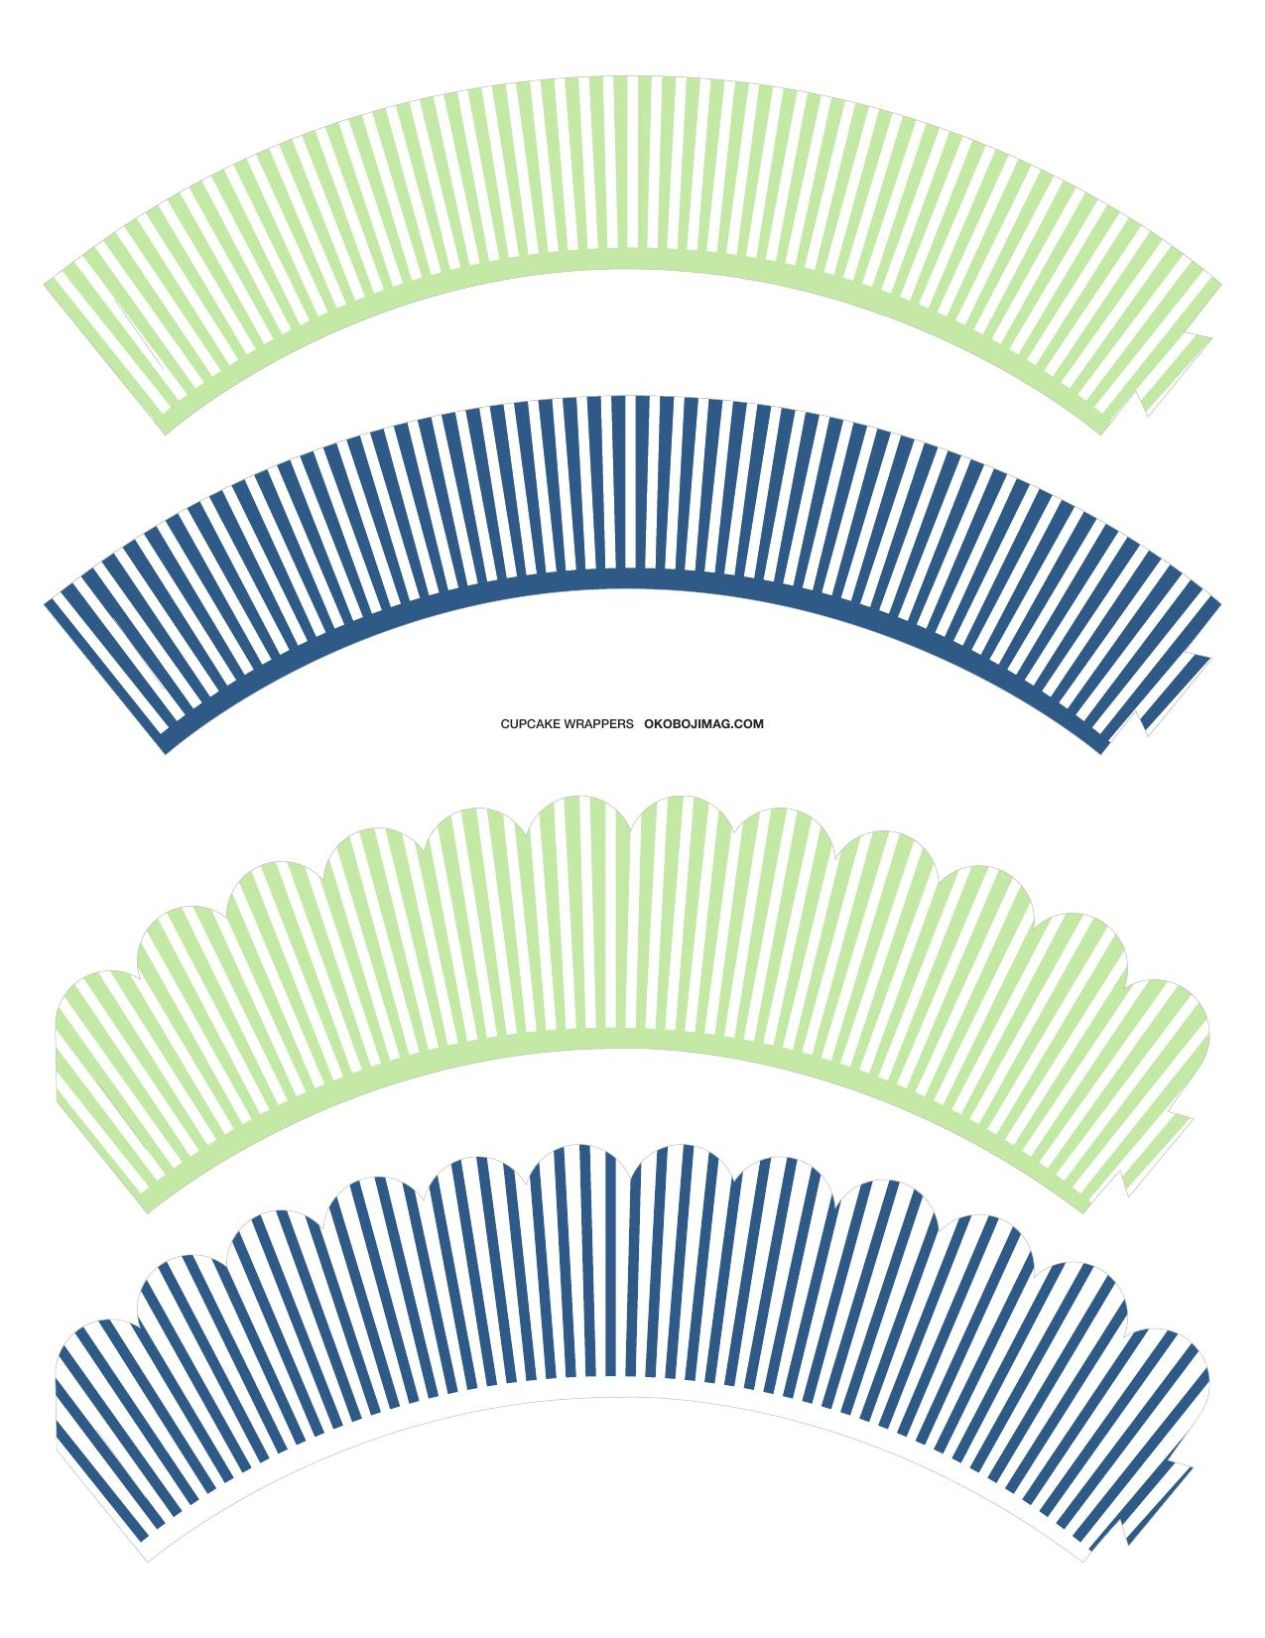 graphic relating to Free Printable Cupcake Wrappers referred to as Absolutely free Printable: Cupcake Wrappers Okoboji Freebies